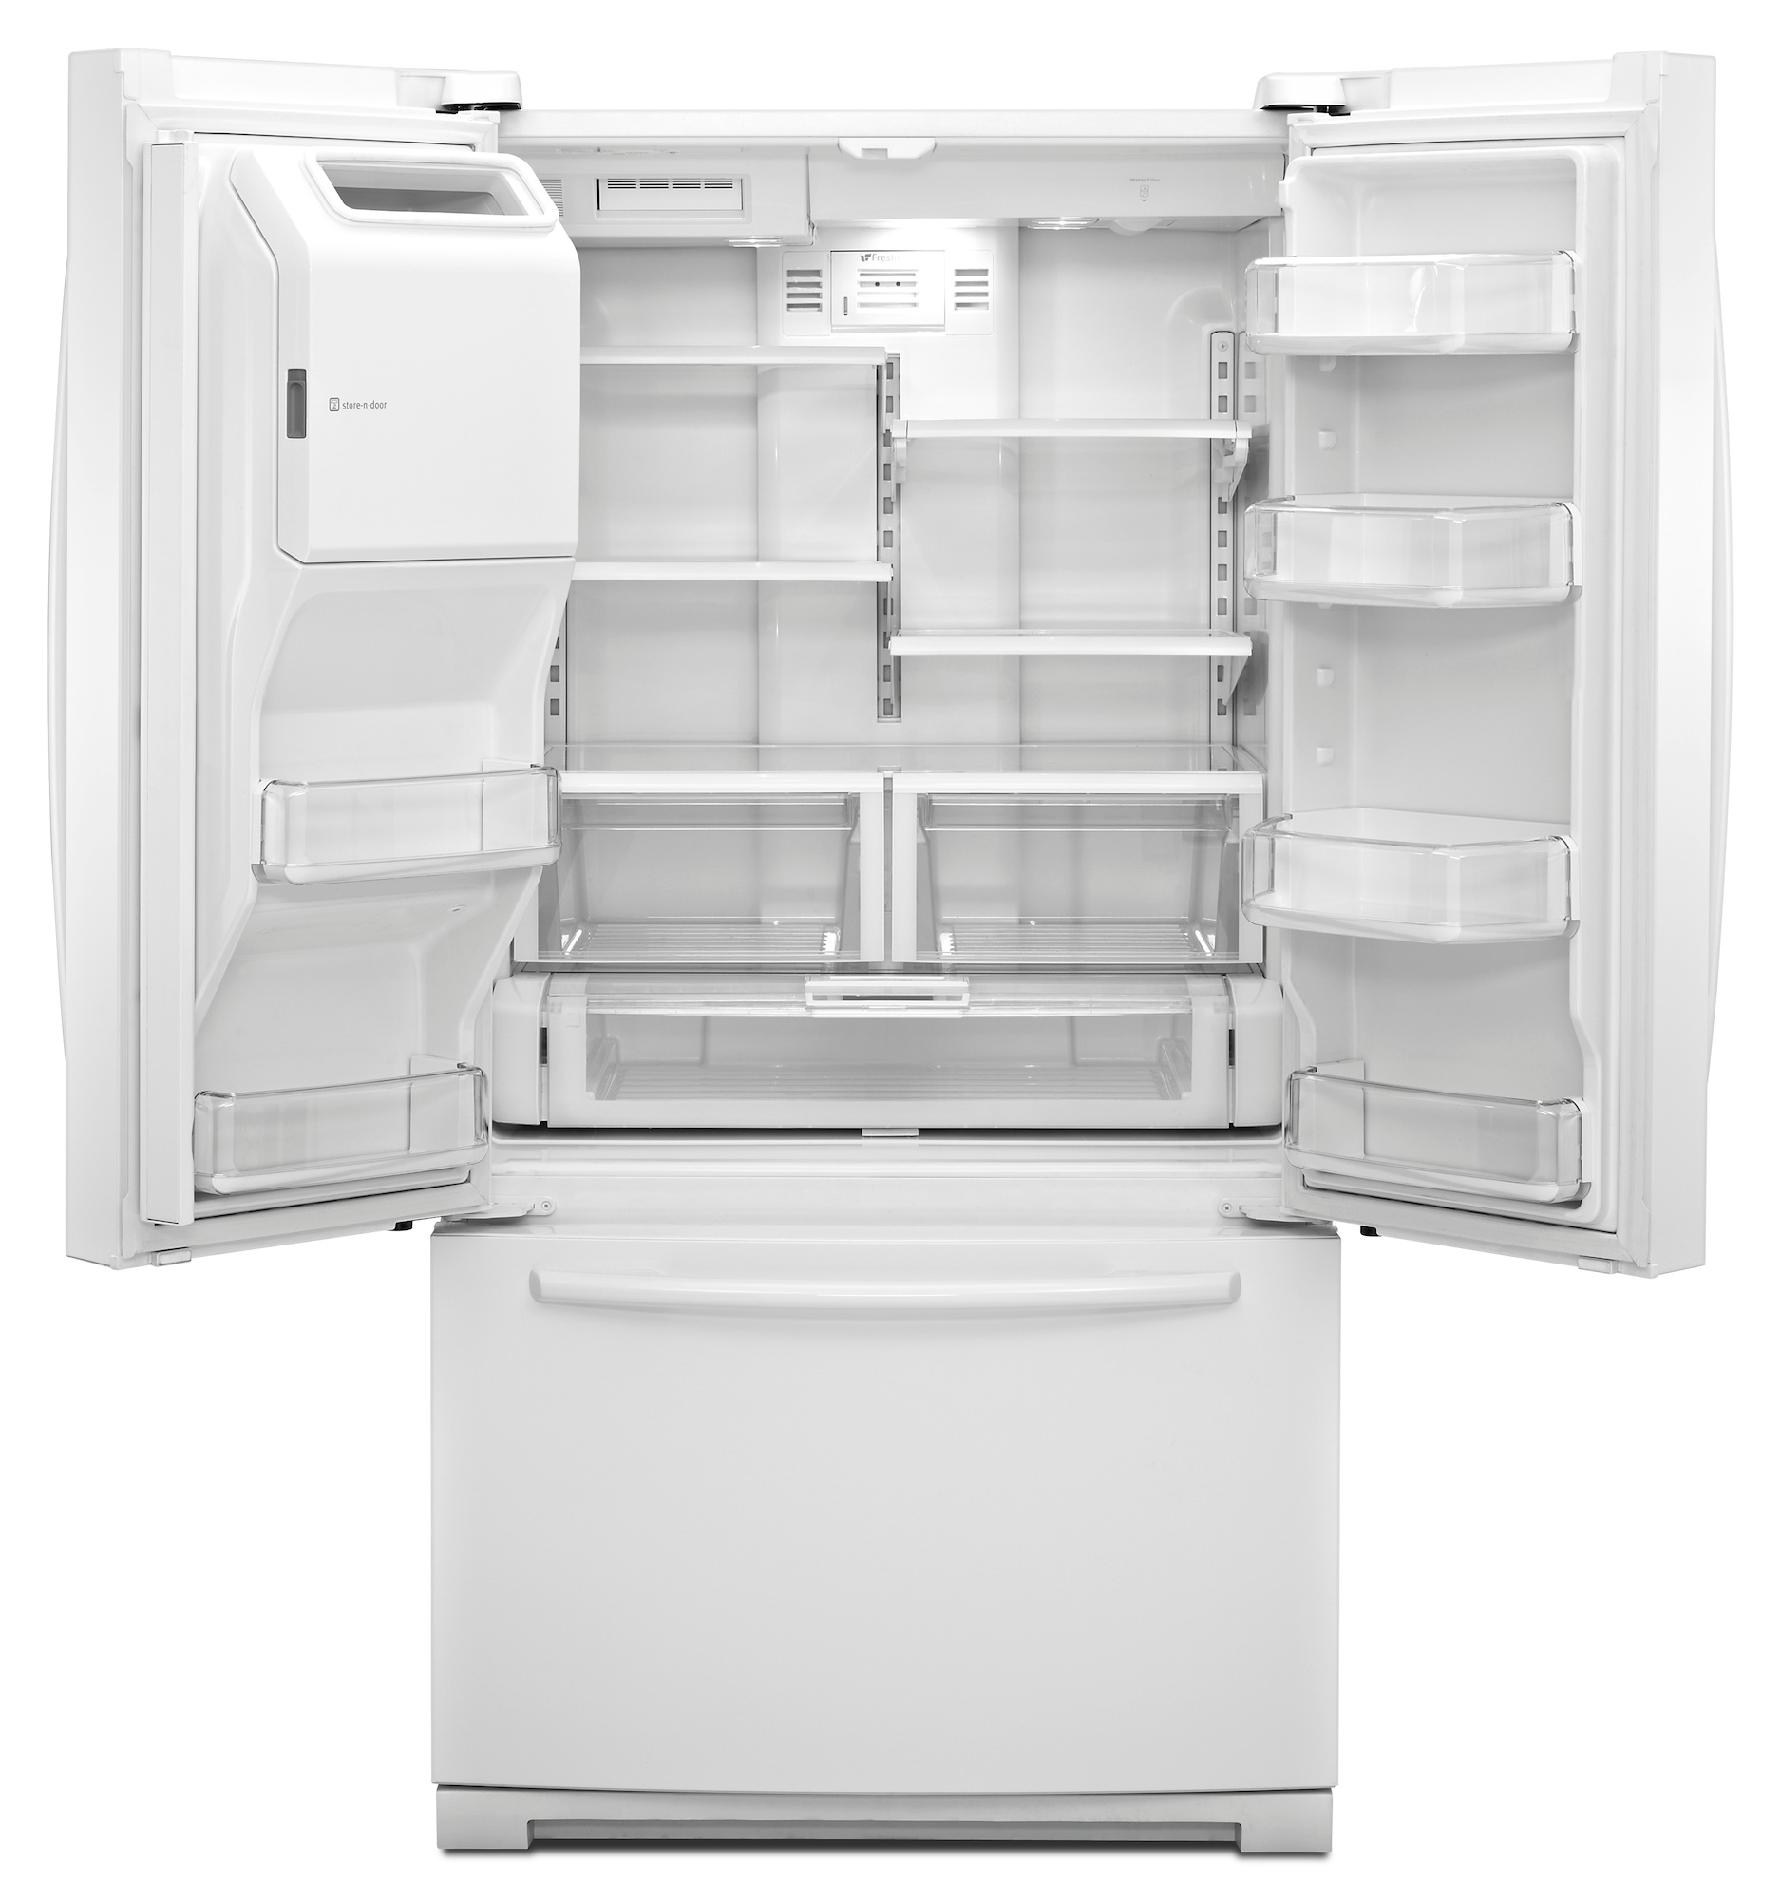 Maytag 26.1 cu. ft. French-Door Refrigerator w/ 2X Life Compressor - White